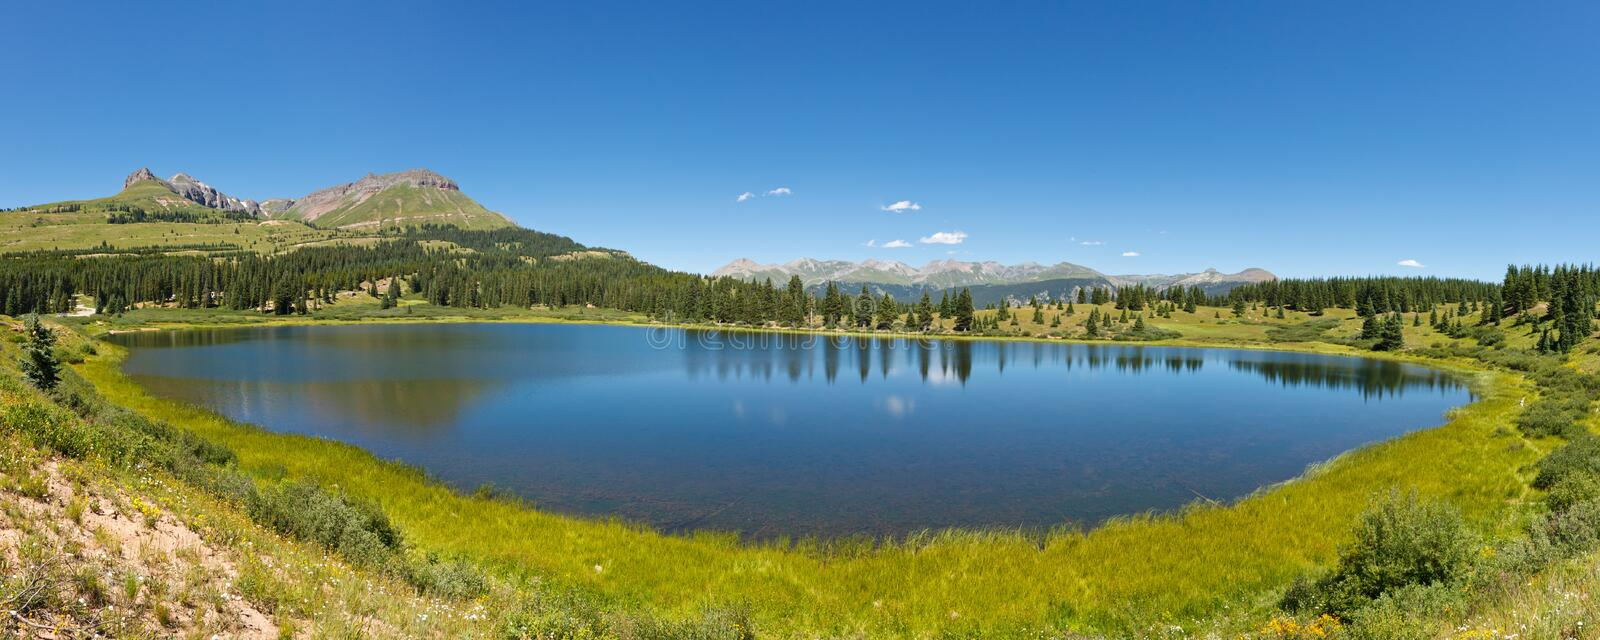 Little Molas Lake, Colorado royalty free stock photography